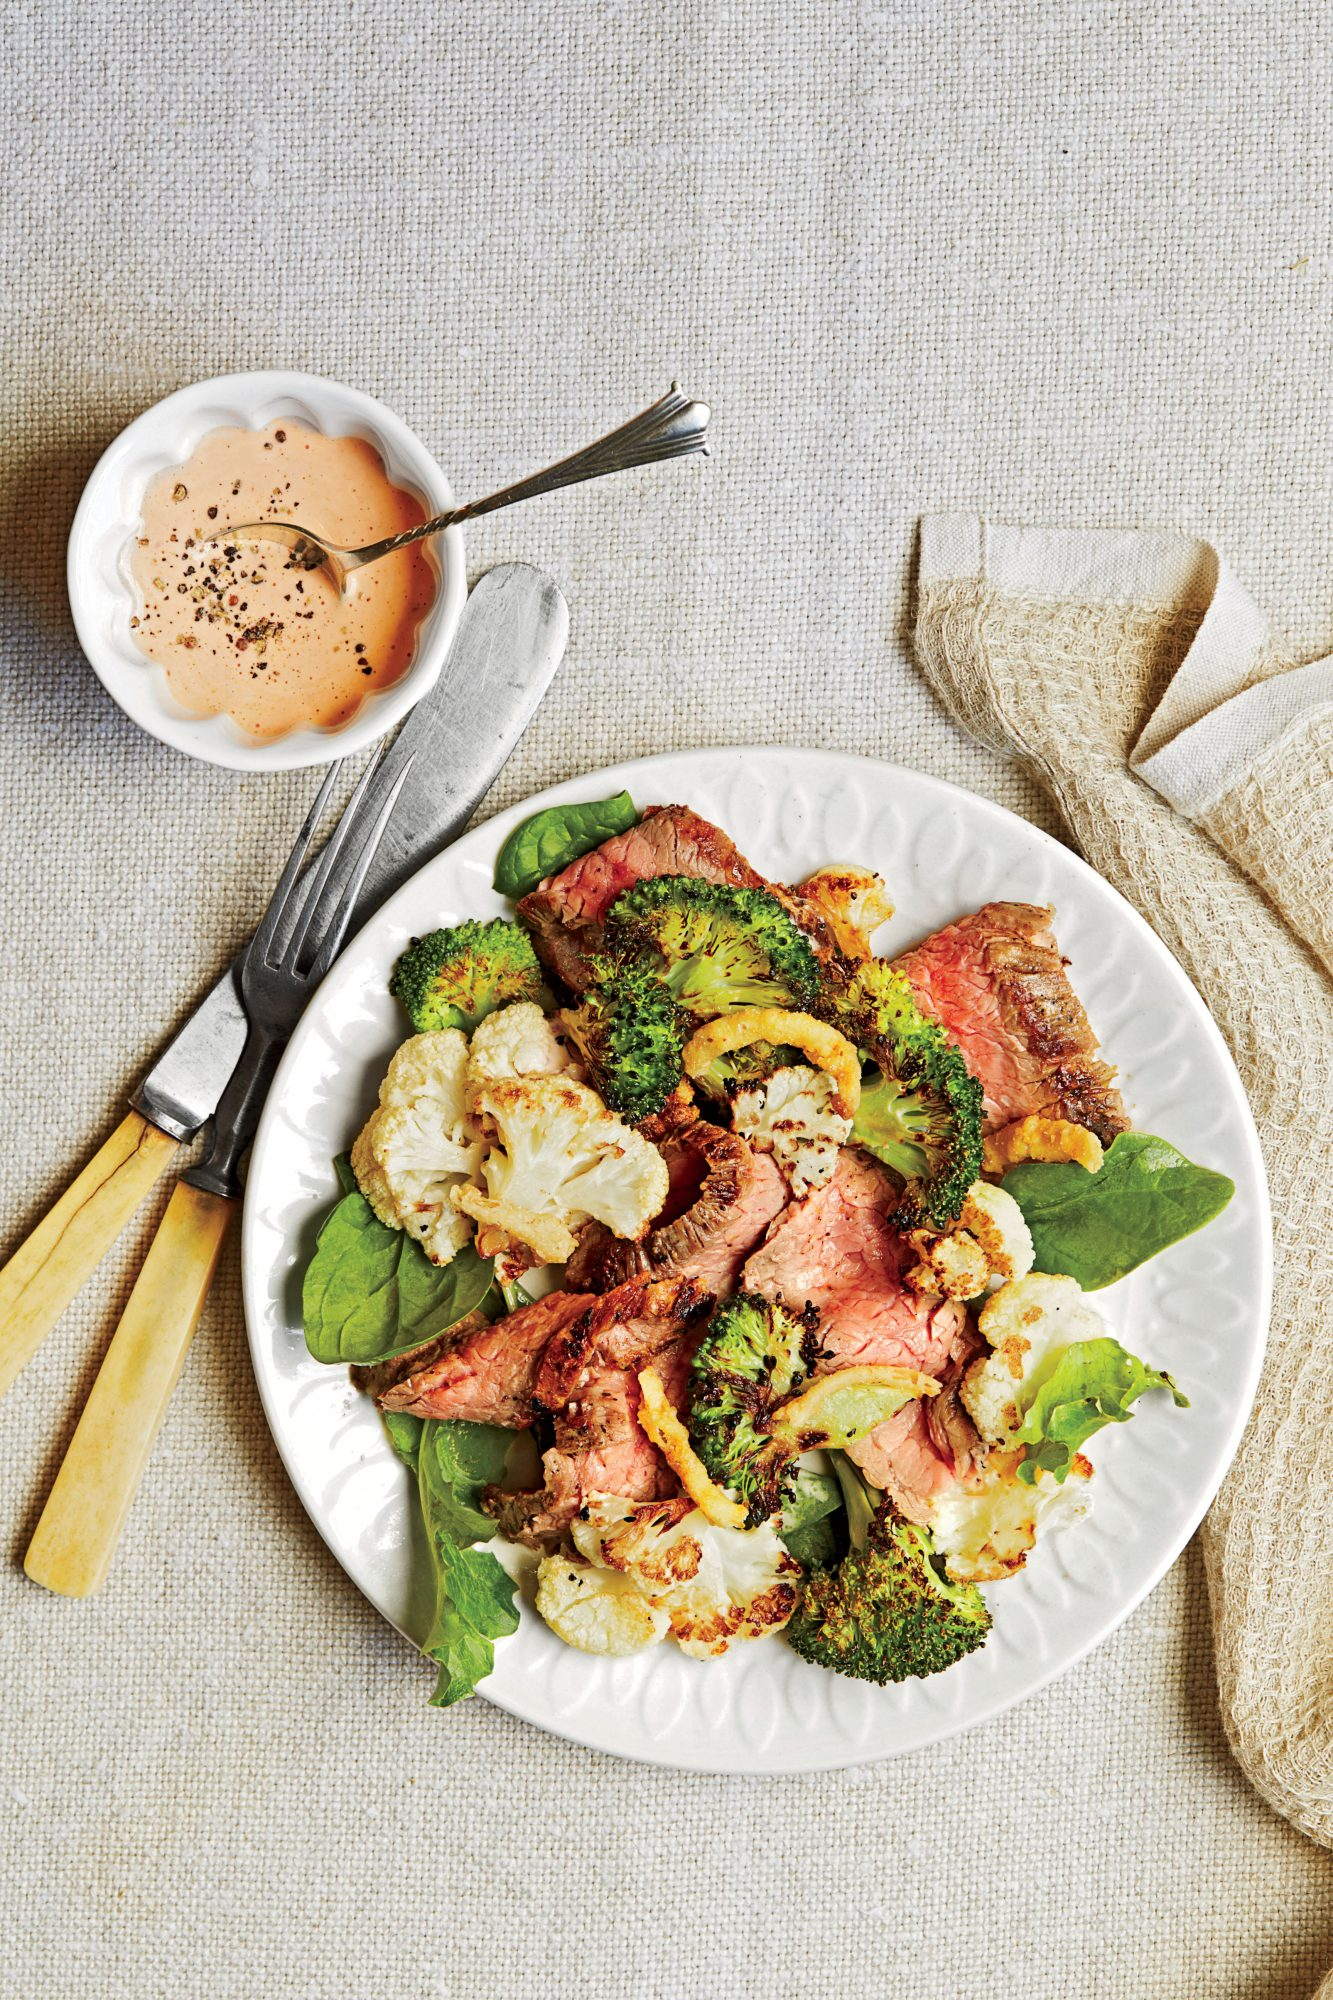 Charred Steak Salad with Spicy Dressing